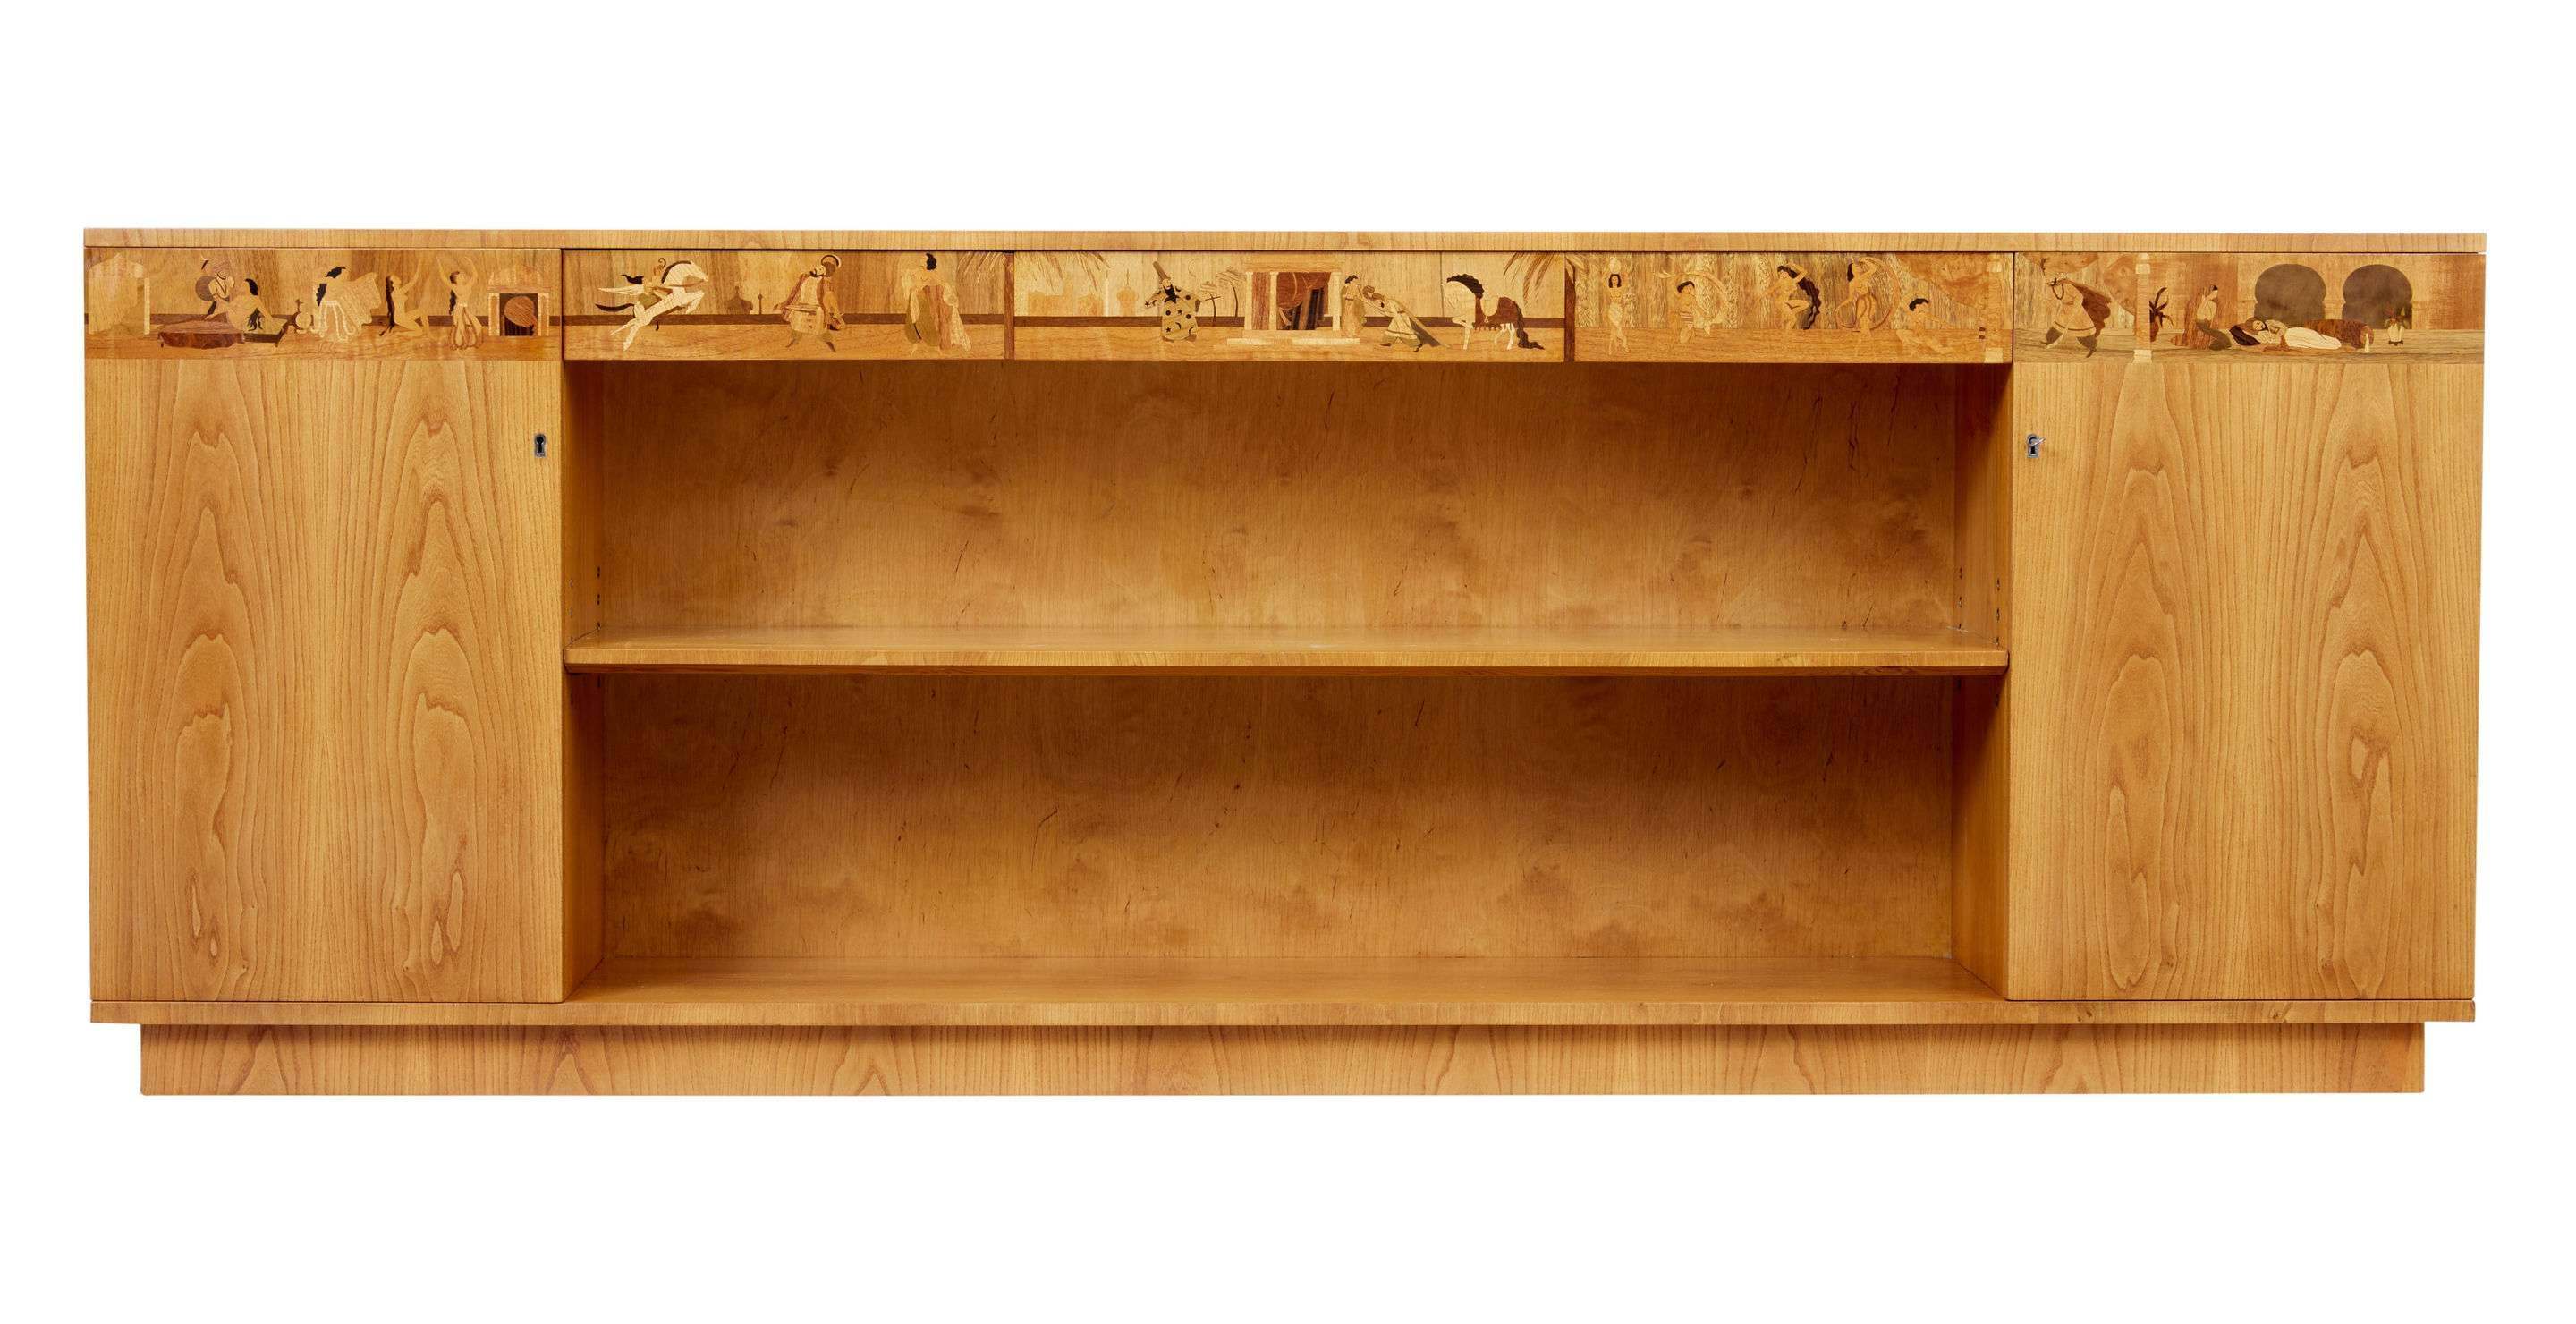 Impressive Large Elm Inlaid Scandinavian Low Bookcase (1950 Sweden Within Long Low Sideboards (Gallery 8 of 20)